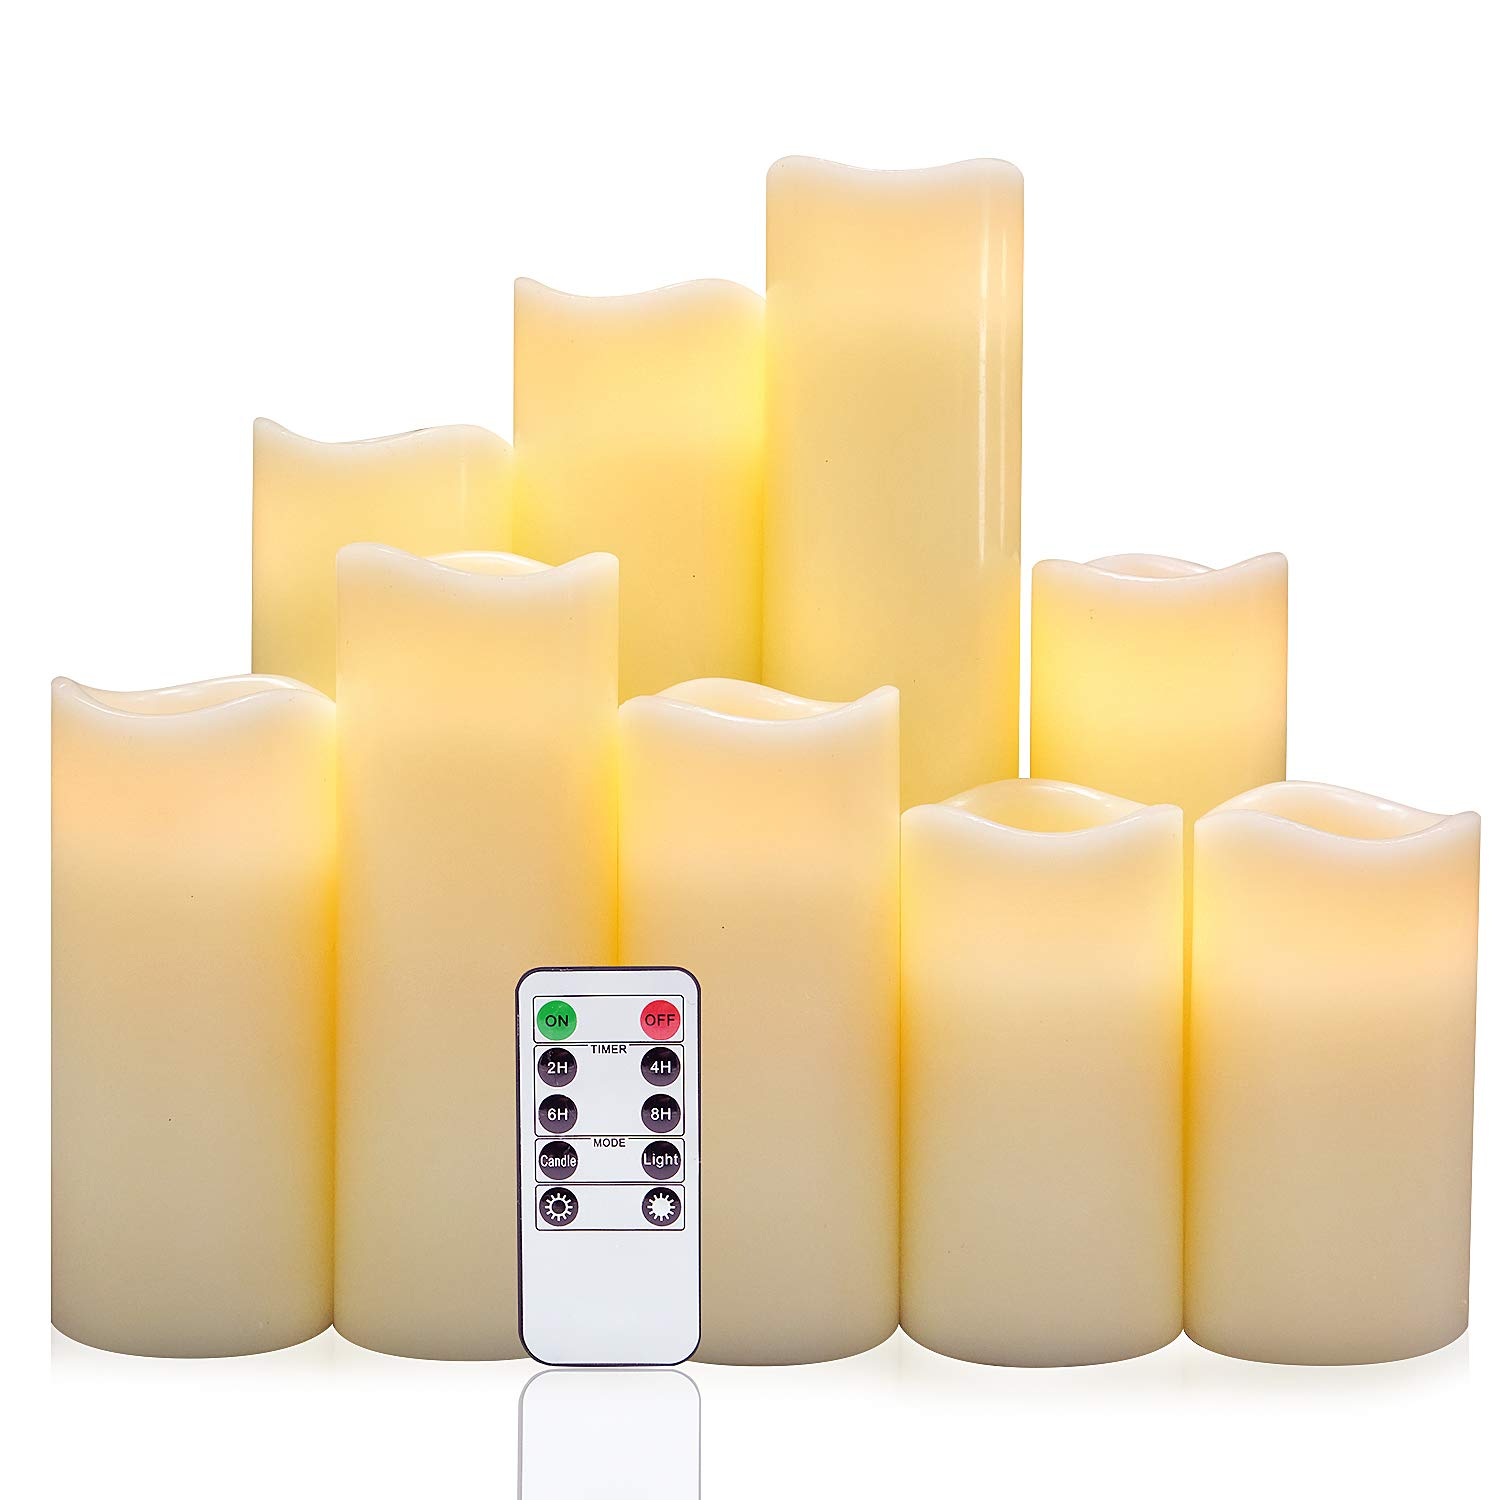 Eldnacele Flameless Candles, Pillar Flickering Flameless LED Candles Warm White Unscented Candles Set of 9(H 4'' 5'' 6'' 7'' 8'' 9'' xD 2.2'') Ivory Real Wax Battery Candles with Remote Timer